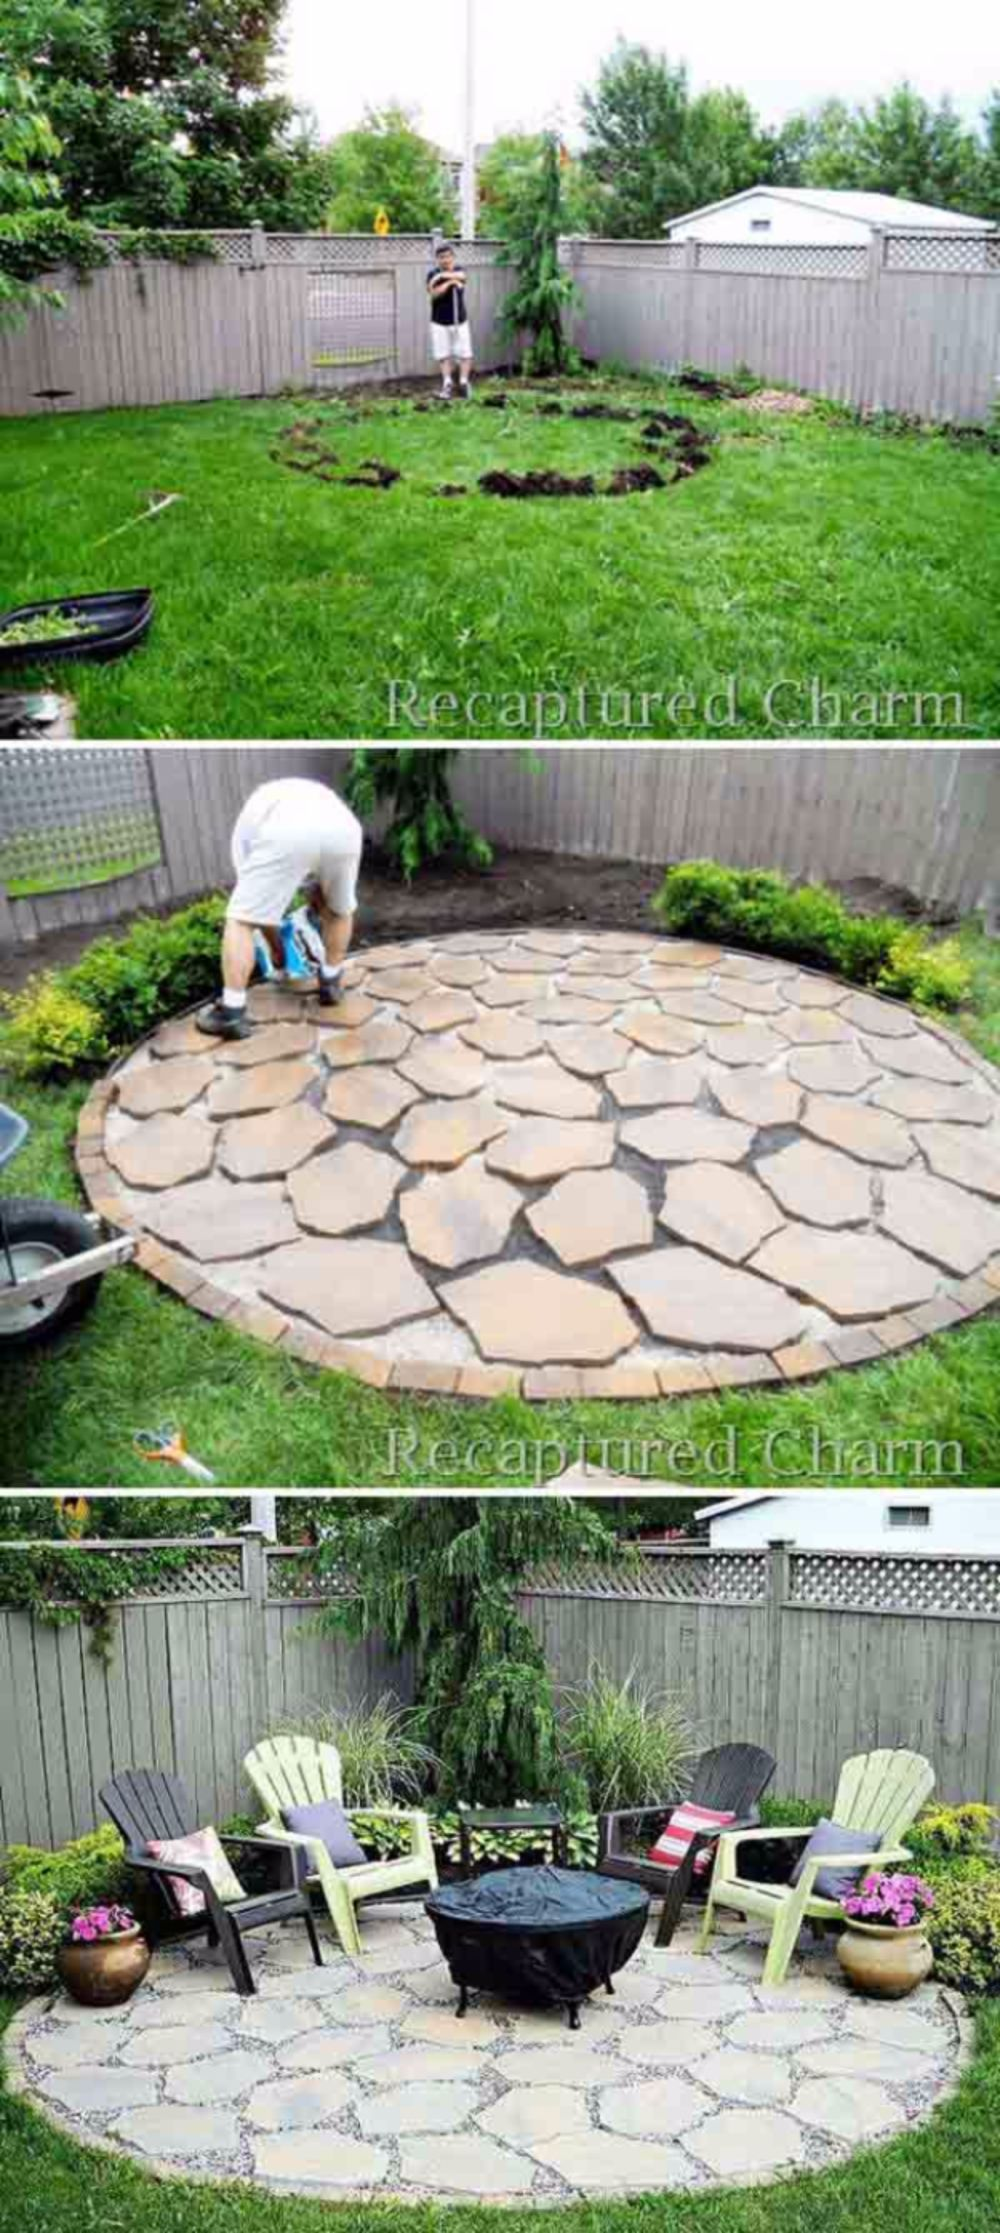 Pin by Alexandra DePastene on For the Home  Diy patio Front yard landscaping Backyard projects